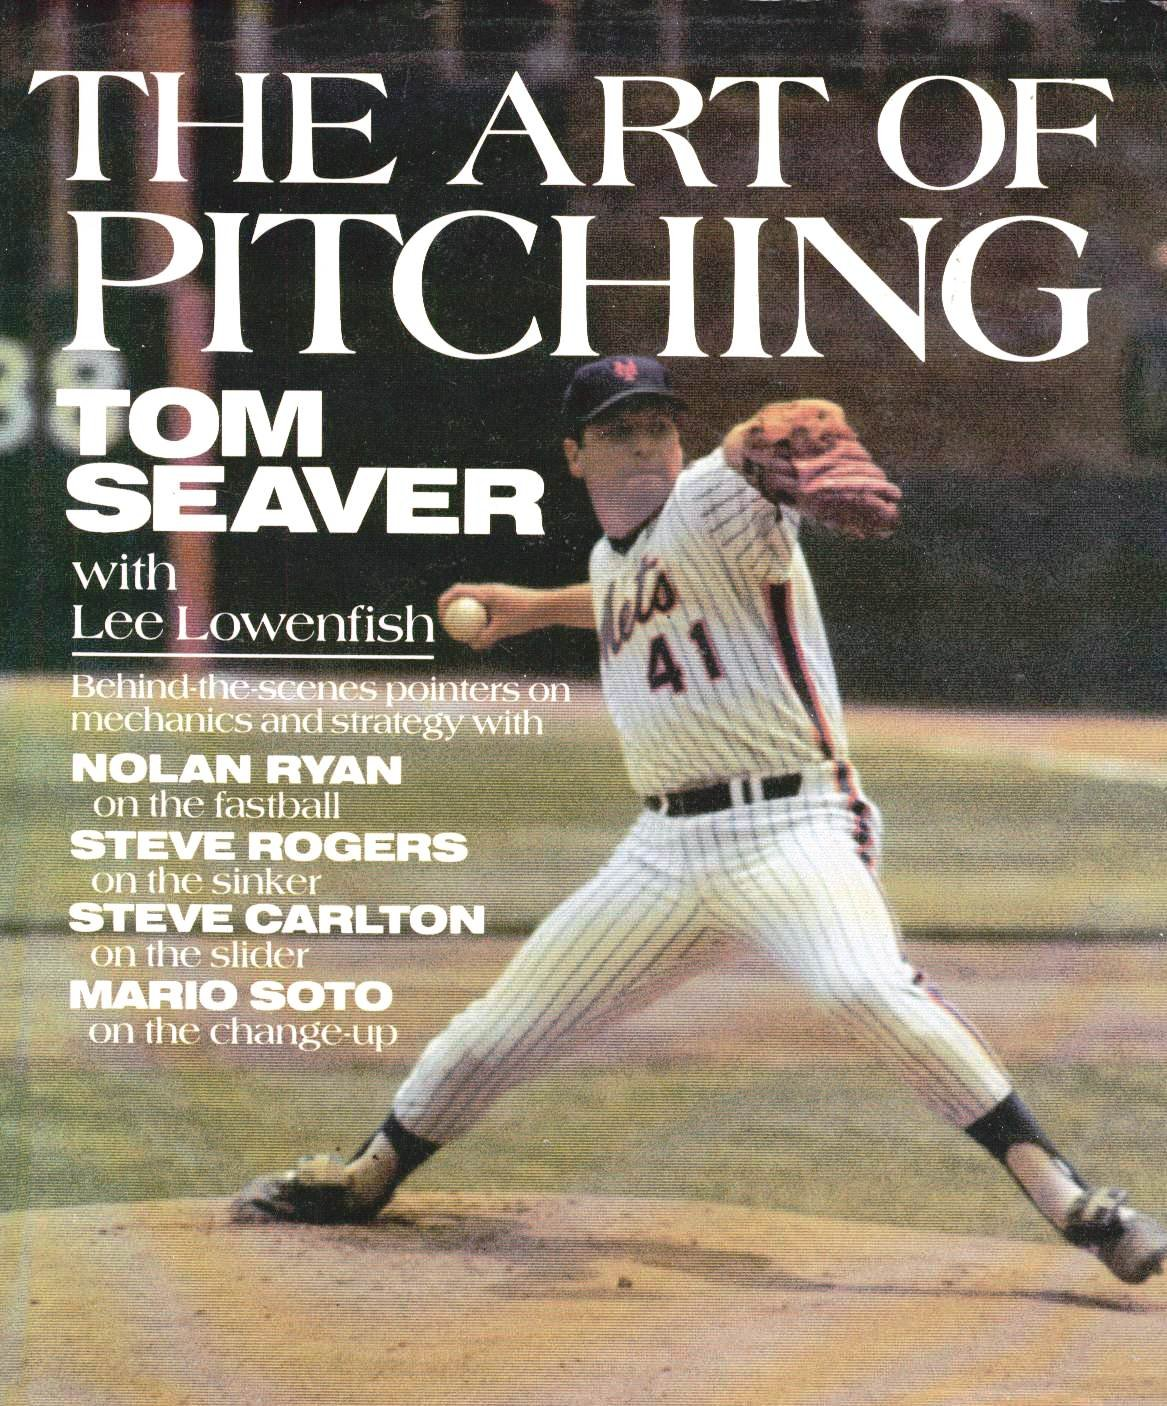 Art of Pitching: Tom Seaver, Lee Lowenfish: 9780688026639: Books - Amazon.ca